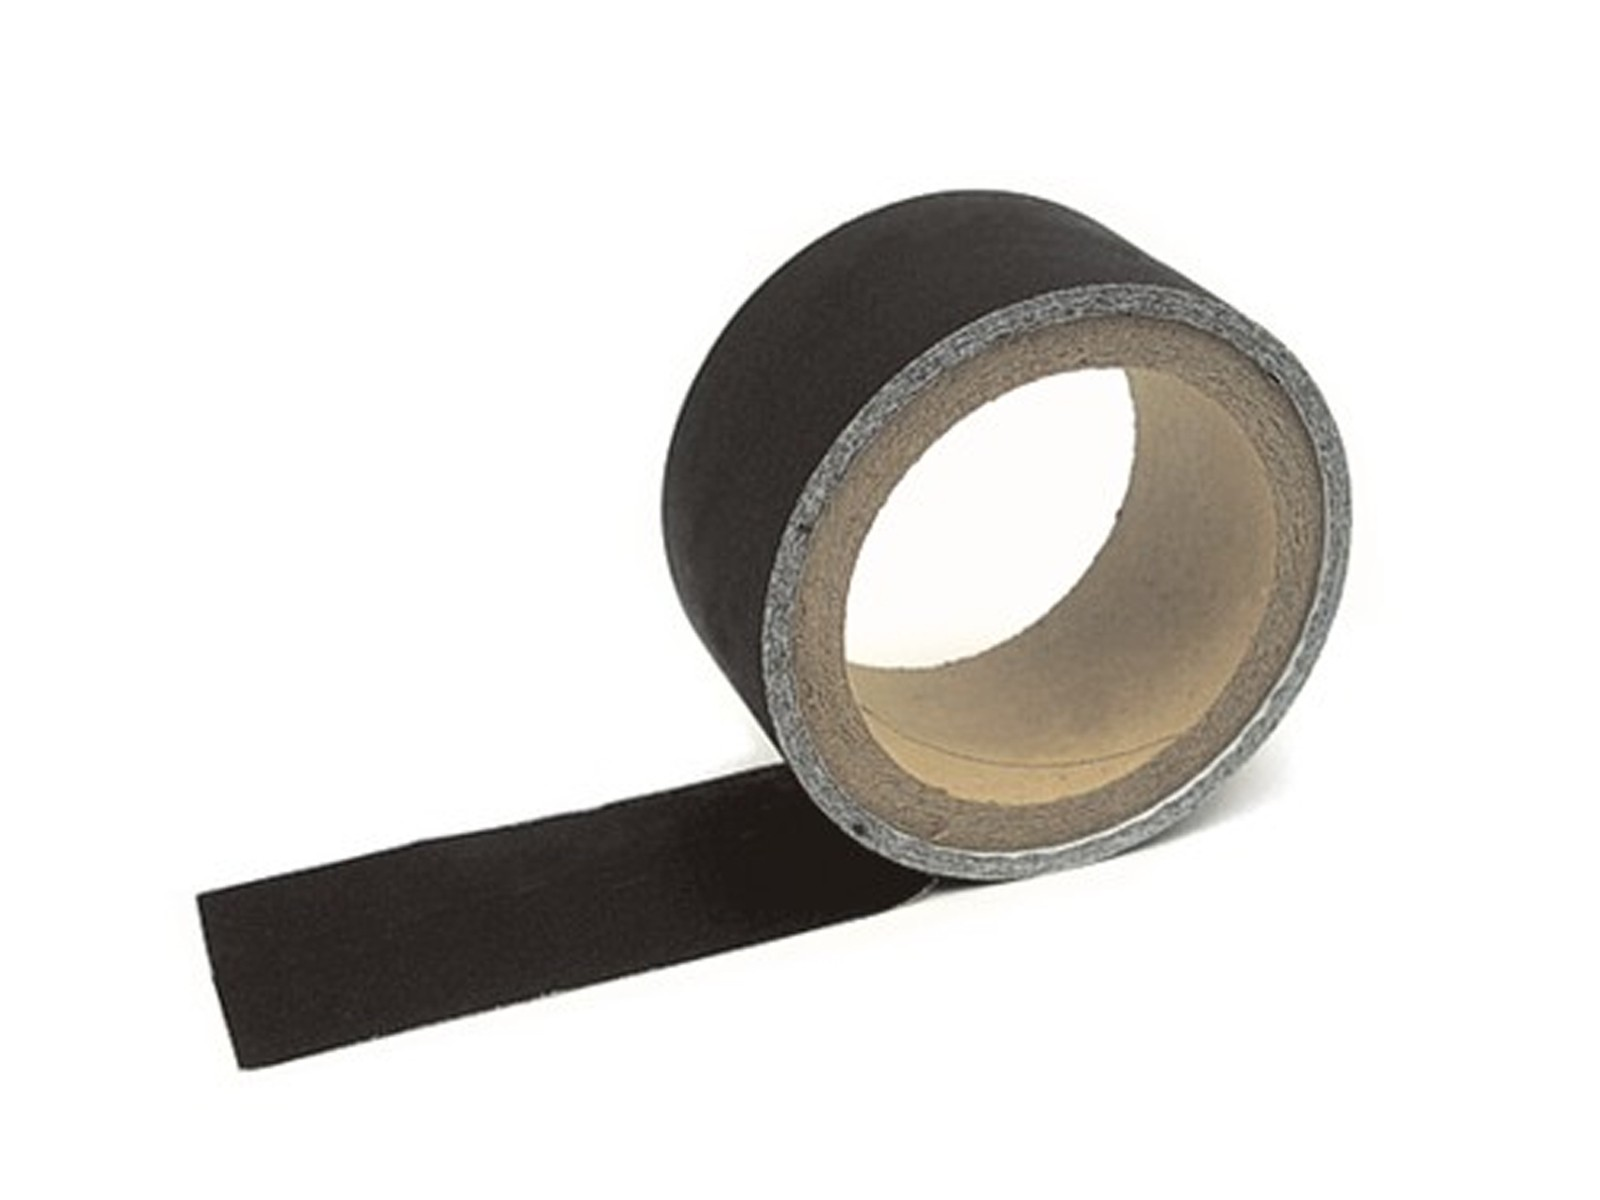 Black Marking Tape 2 in x 50 ft roll